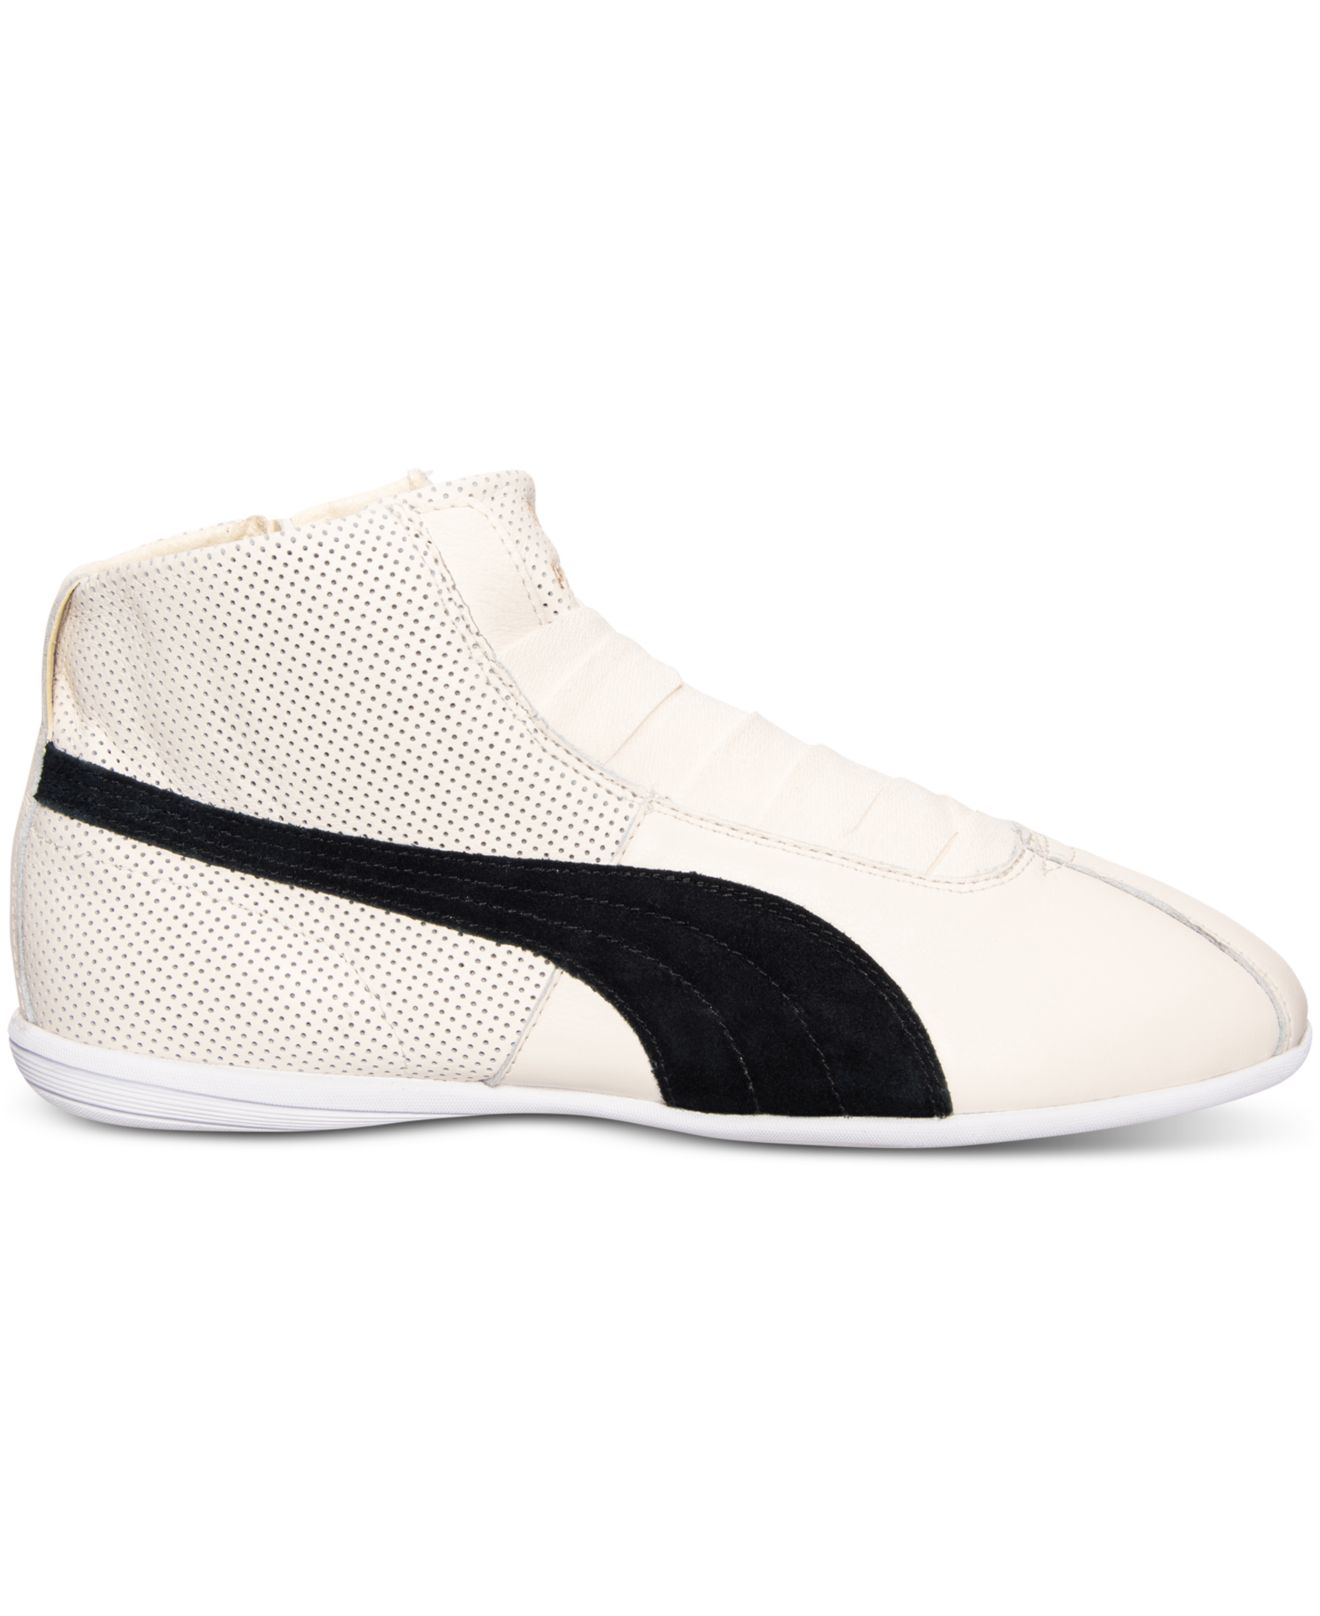 2b987d326d3 Lyst - PUMA Women s Eskiva Mid Casual Sneakers From Finish Line in White